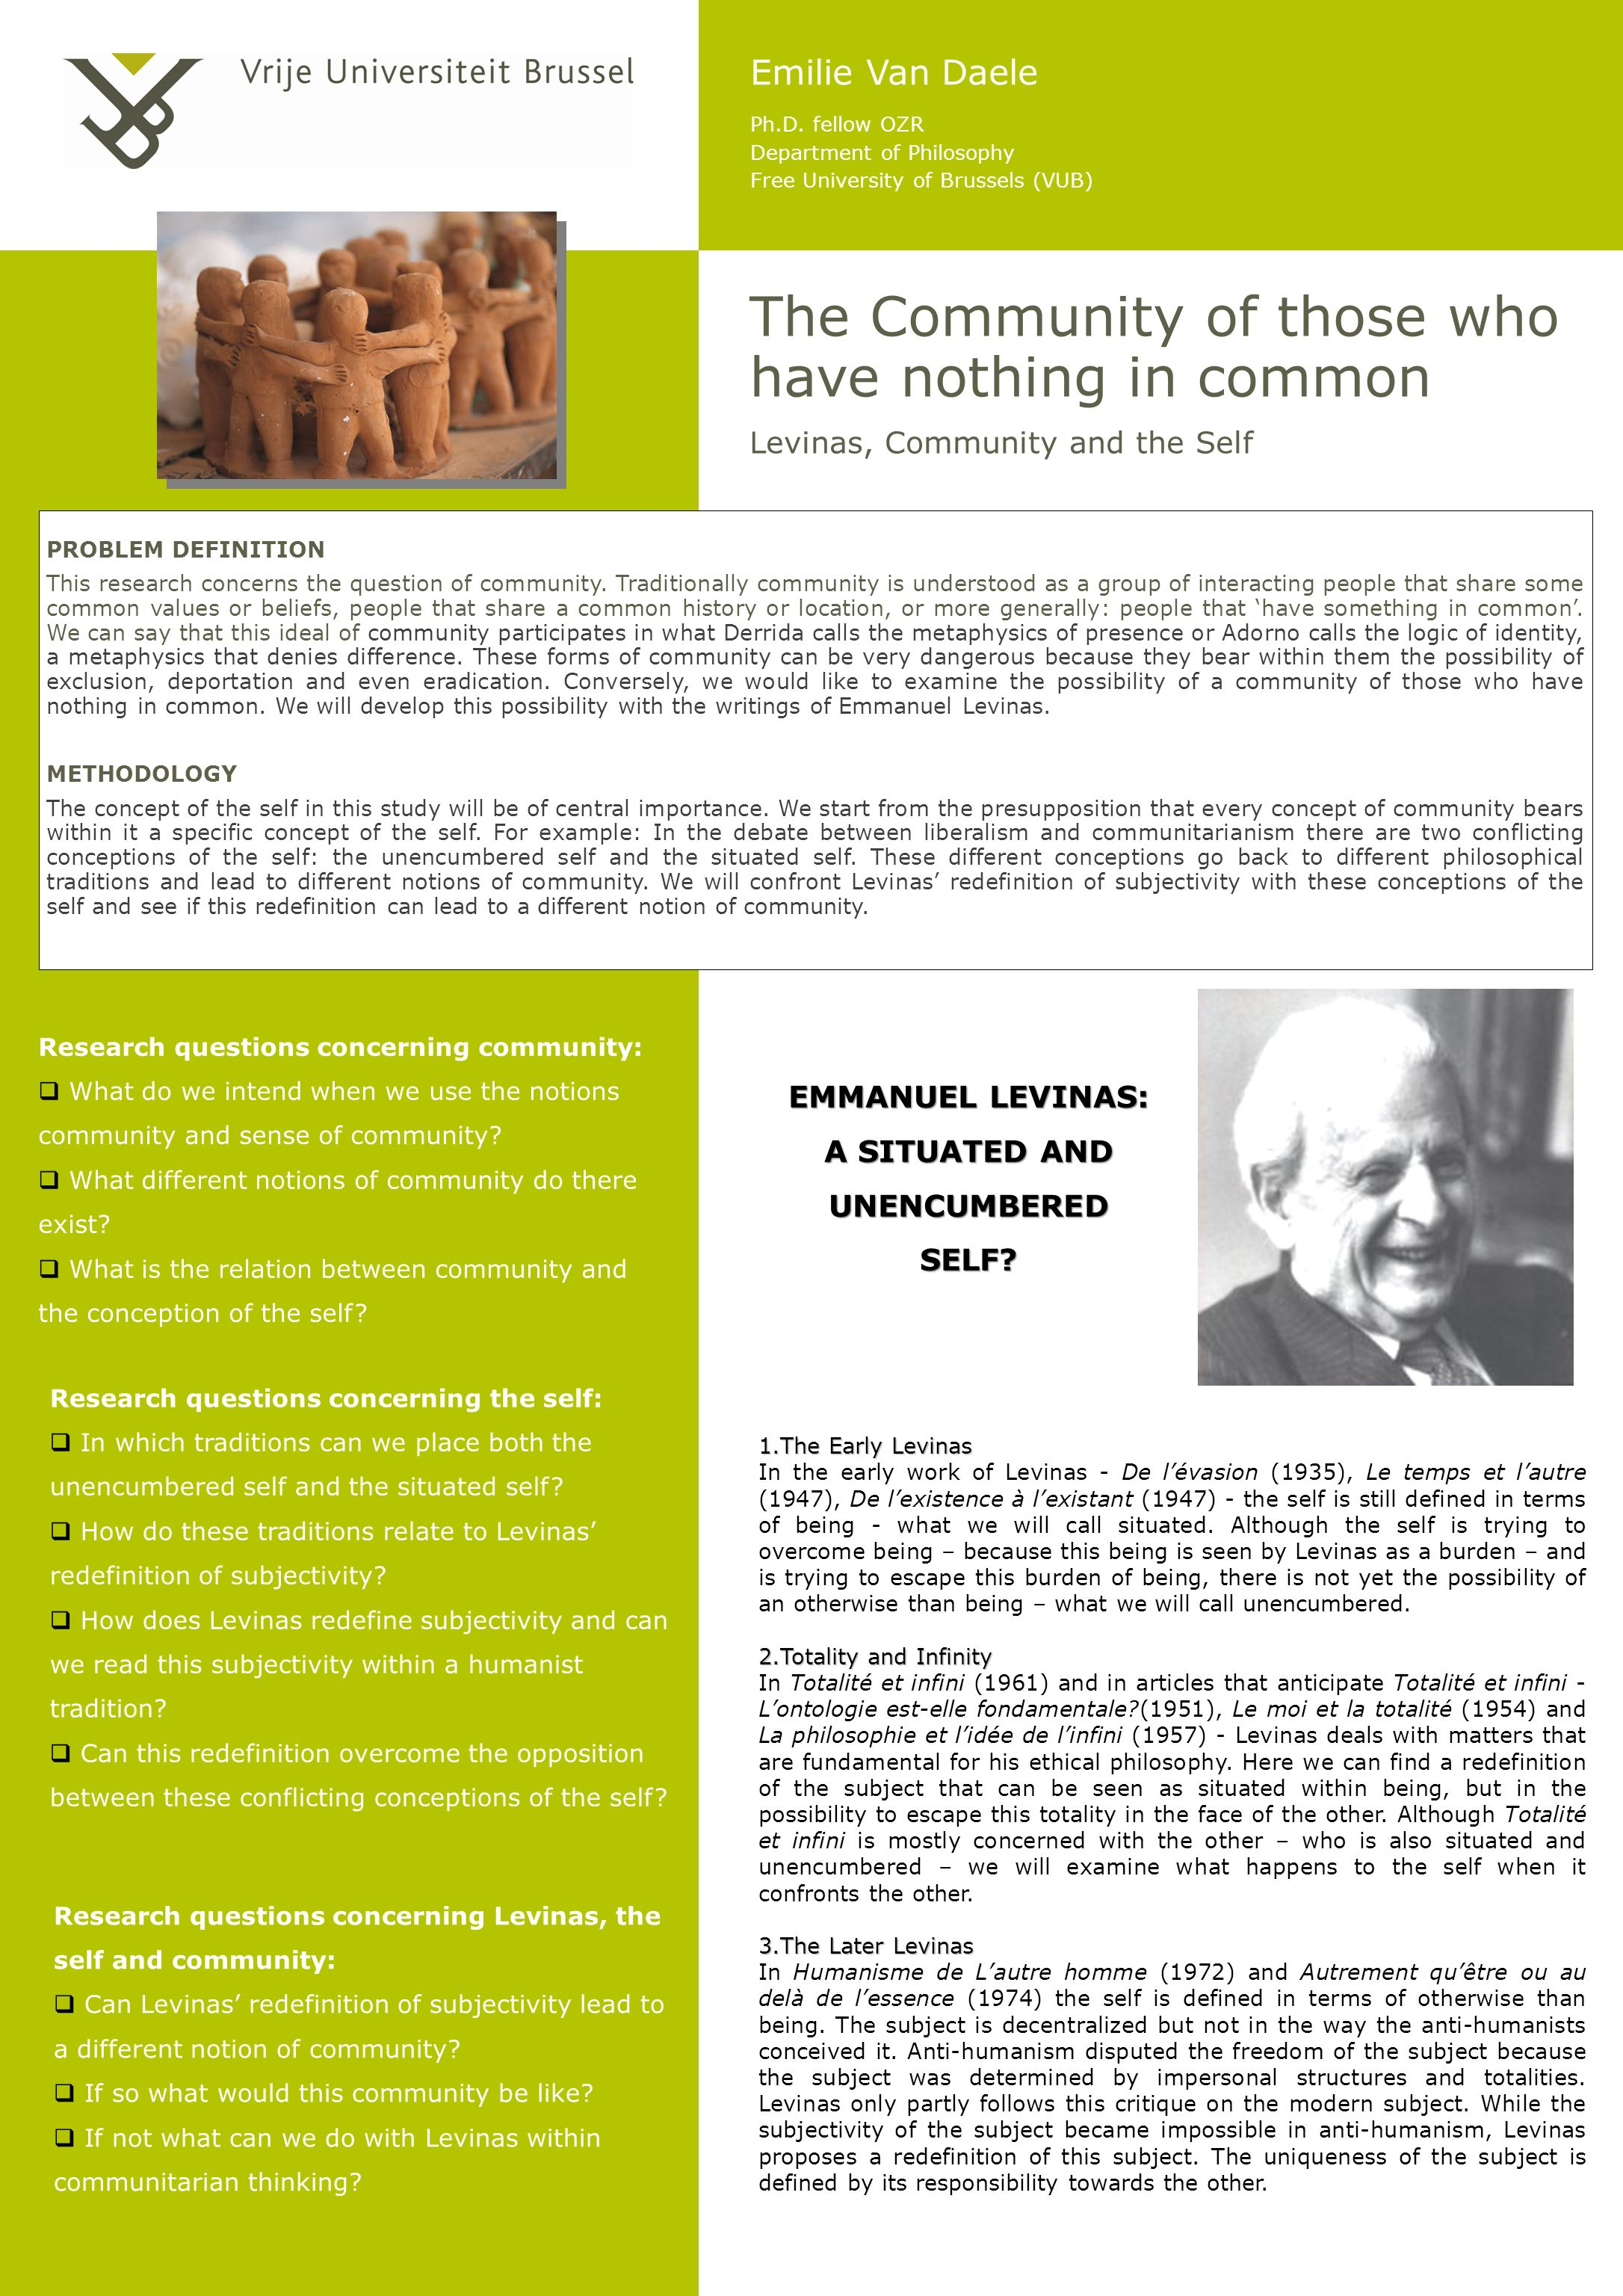 EMMANUEL LEVINAS: A SITUATED AND UNENCUMBERED SELF